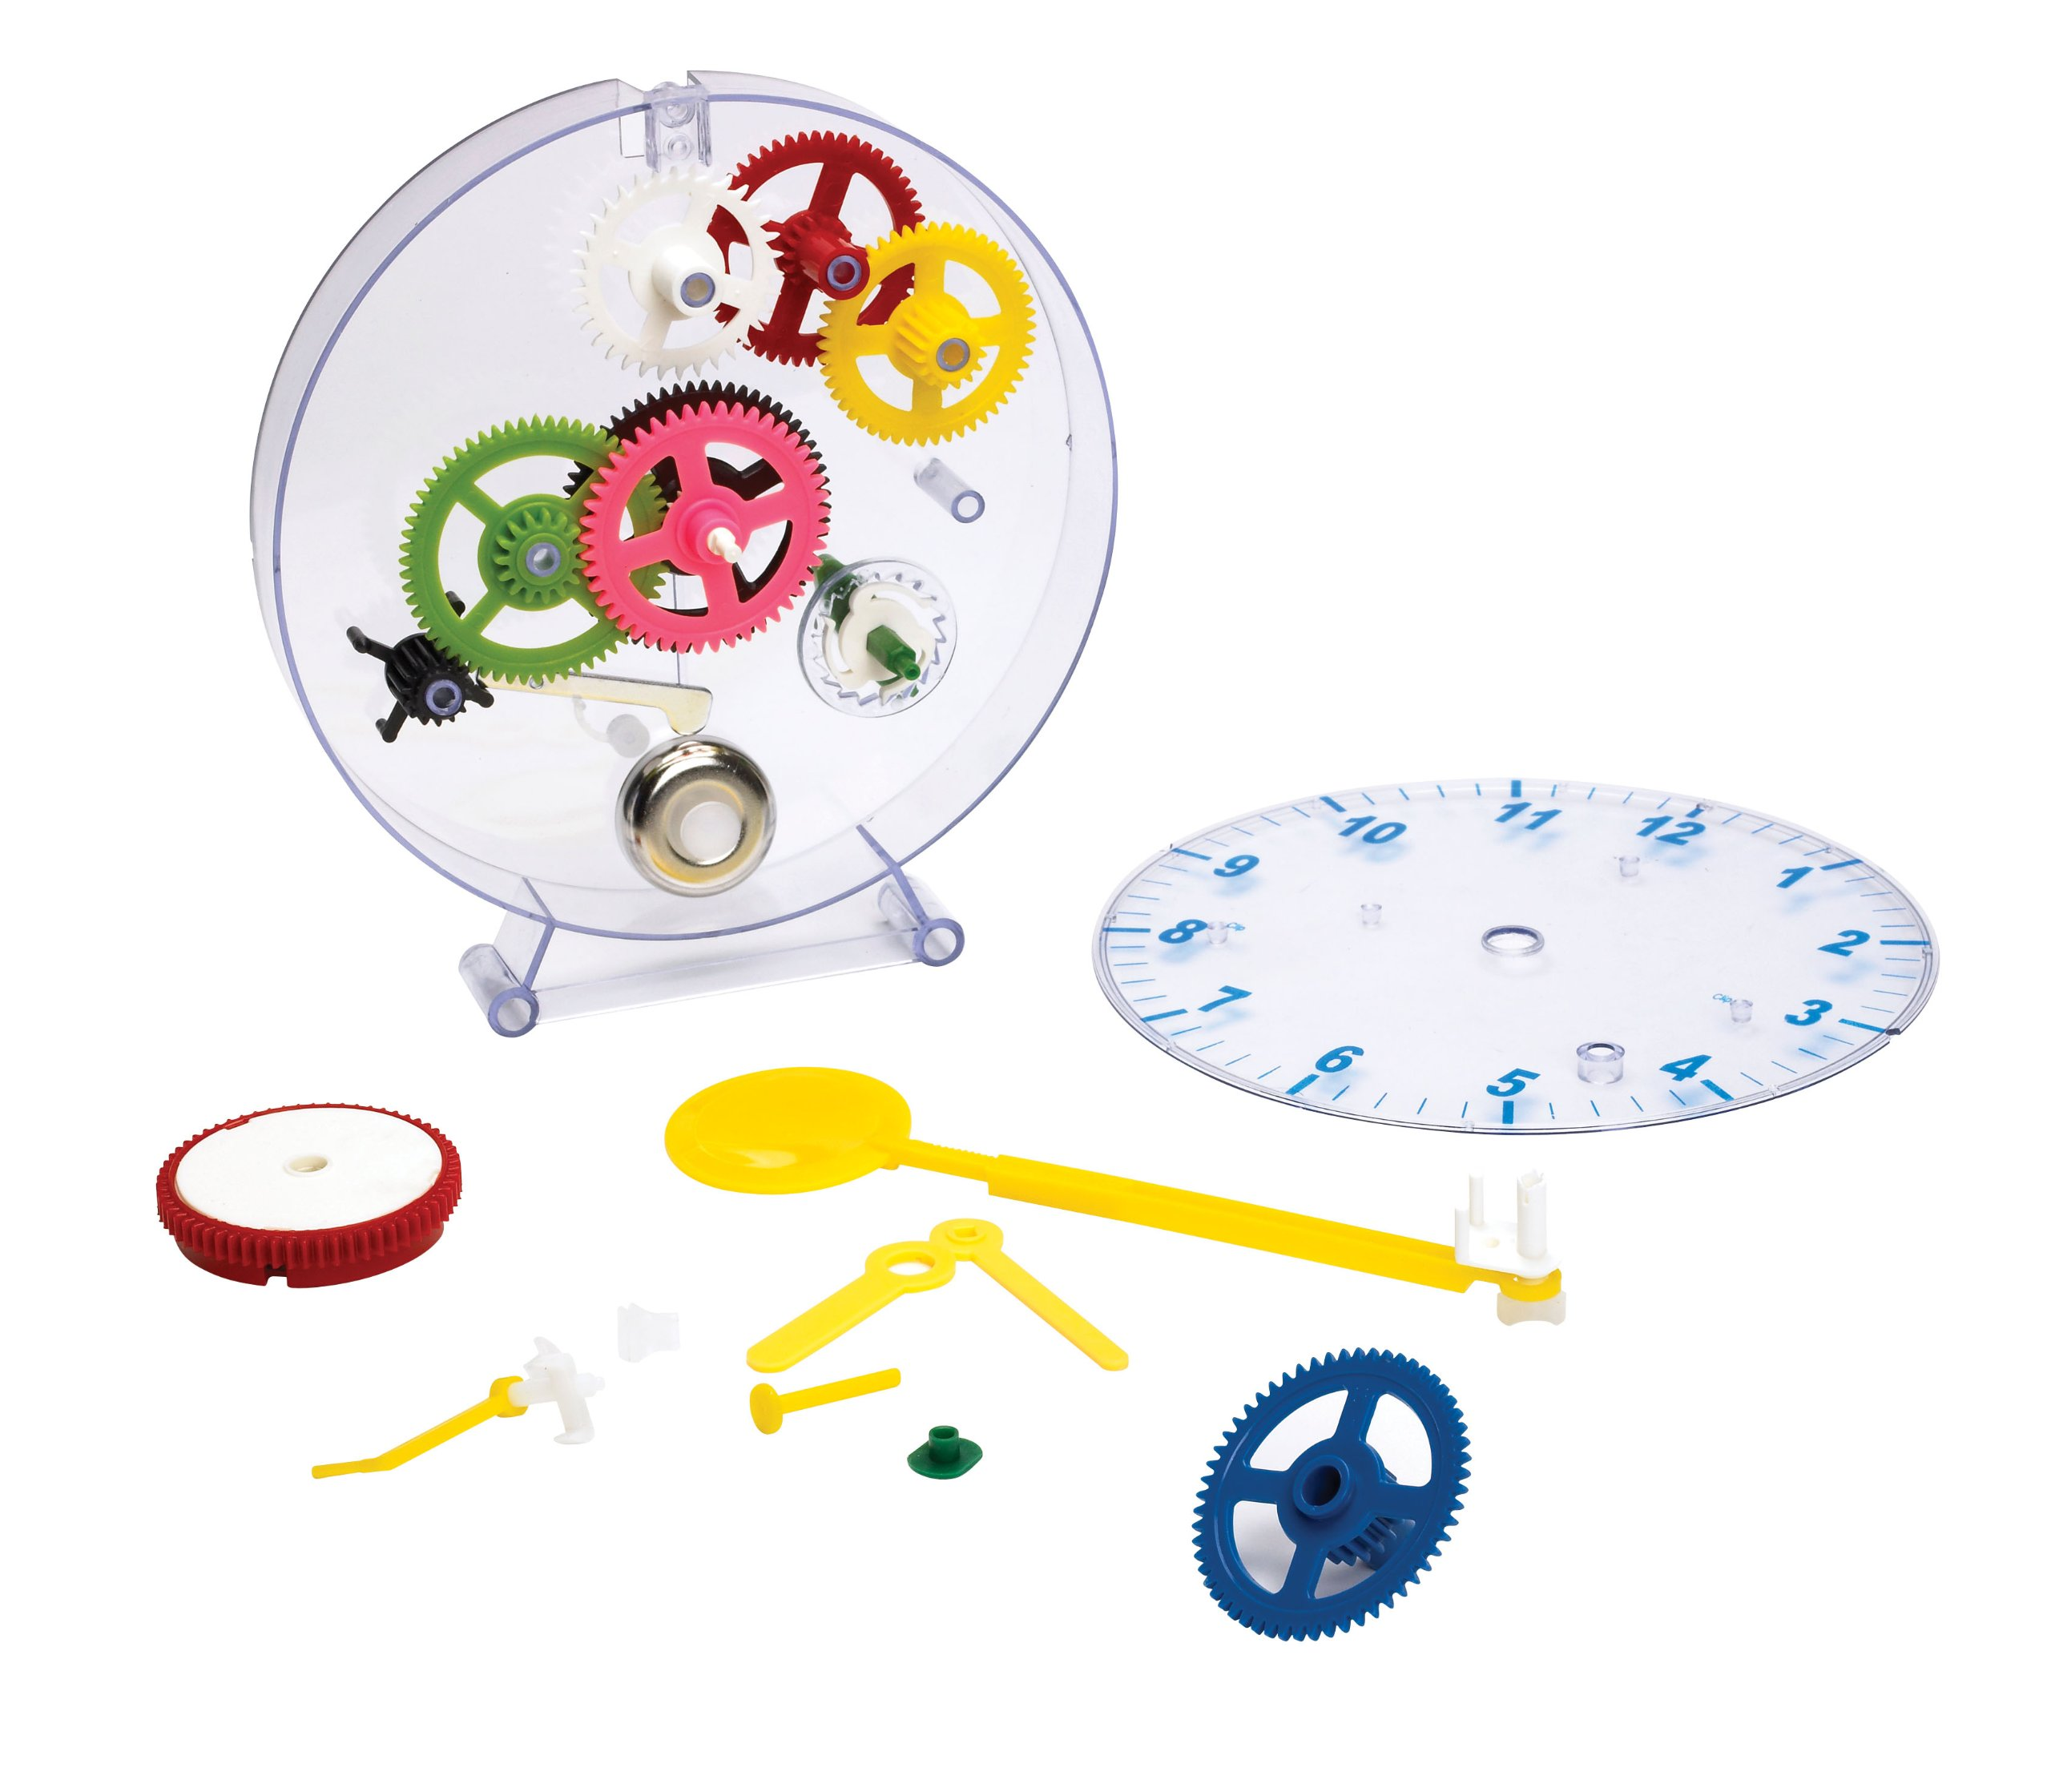 Happy Puzzle Company The Amazing Clock Kit - Construct your own colorful real working clock. Educational toy that teaches how clocks work, and doubles as an actual wind-up clock.